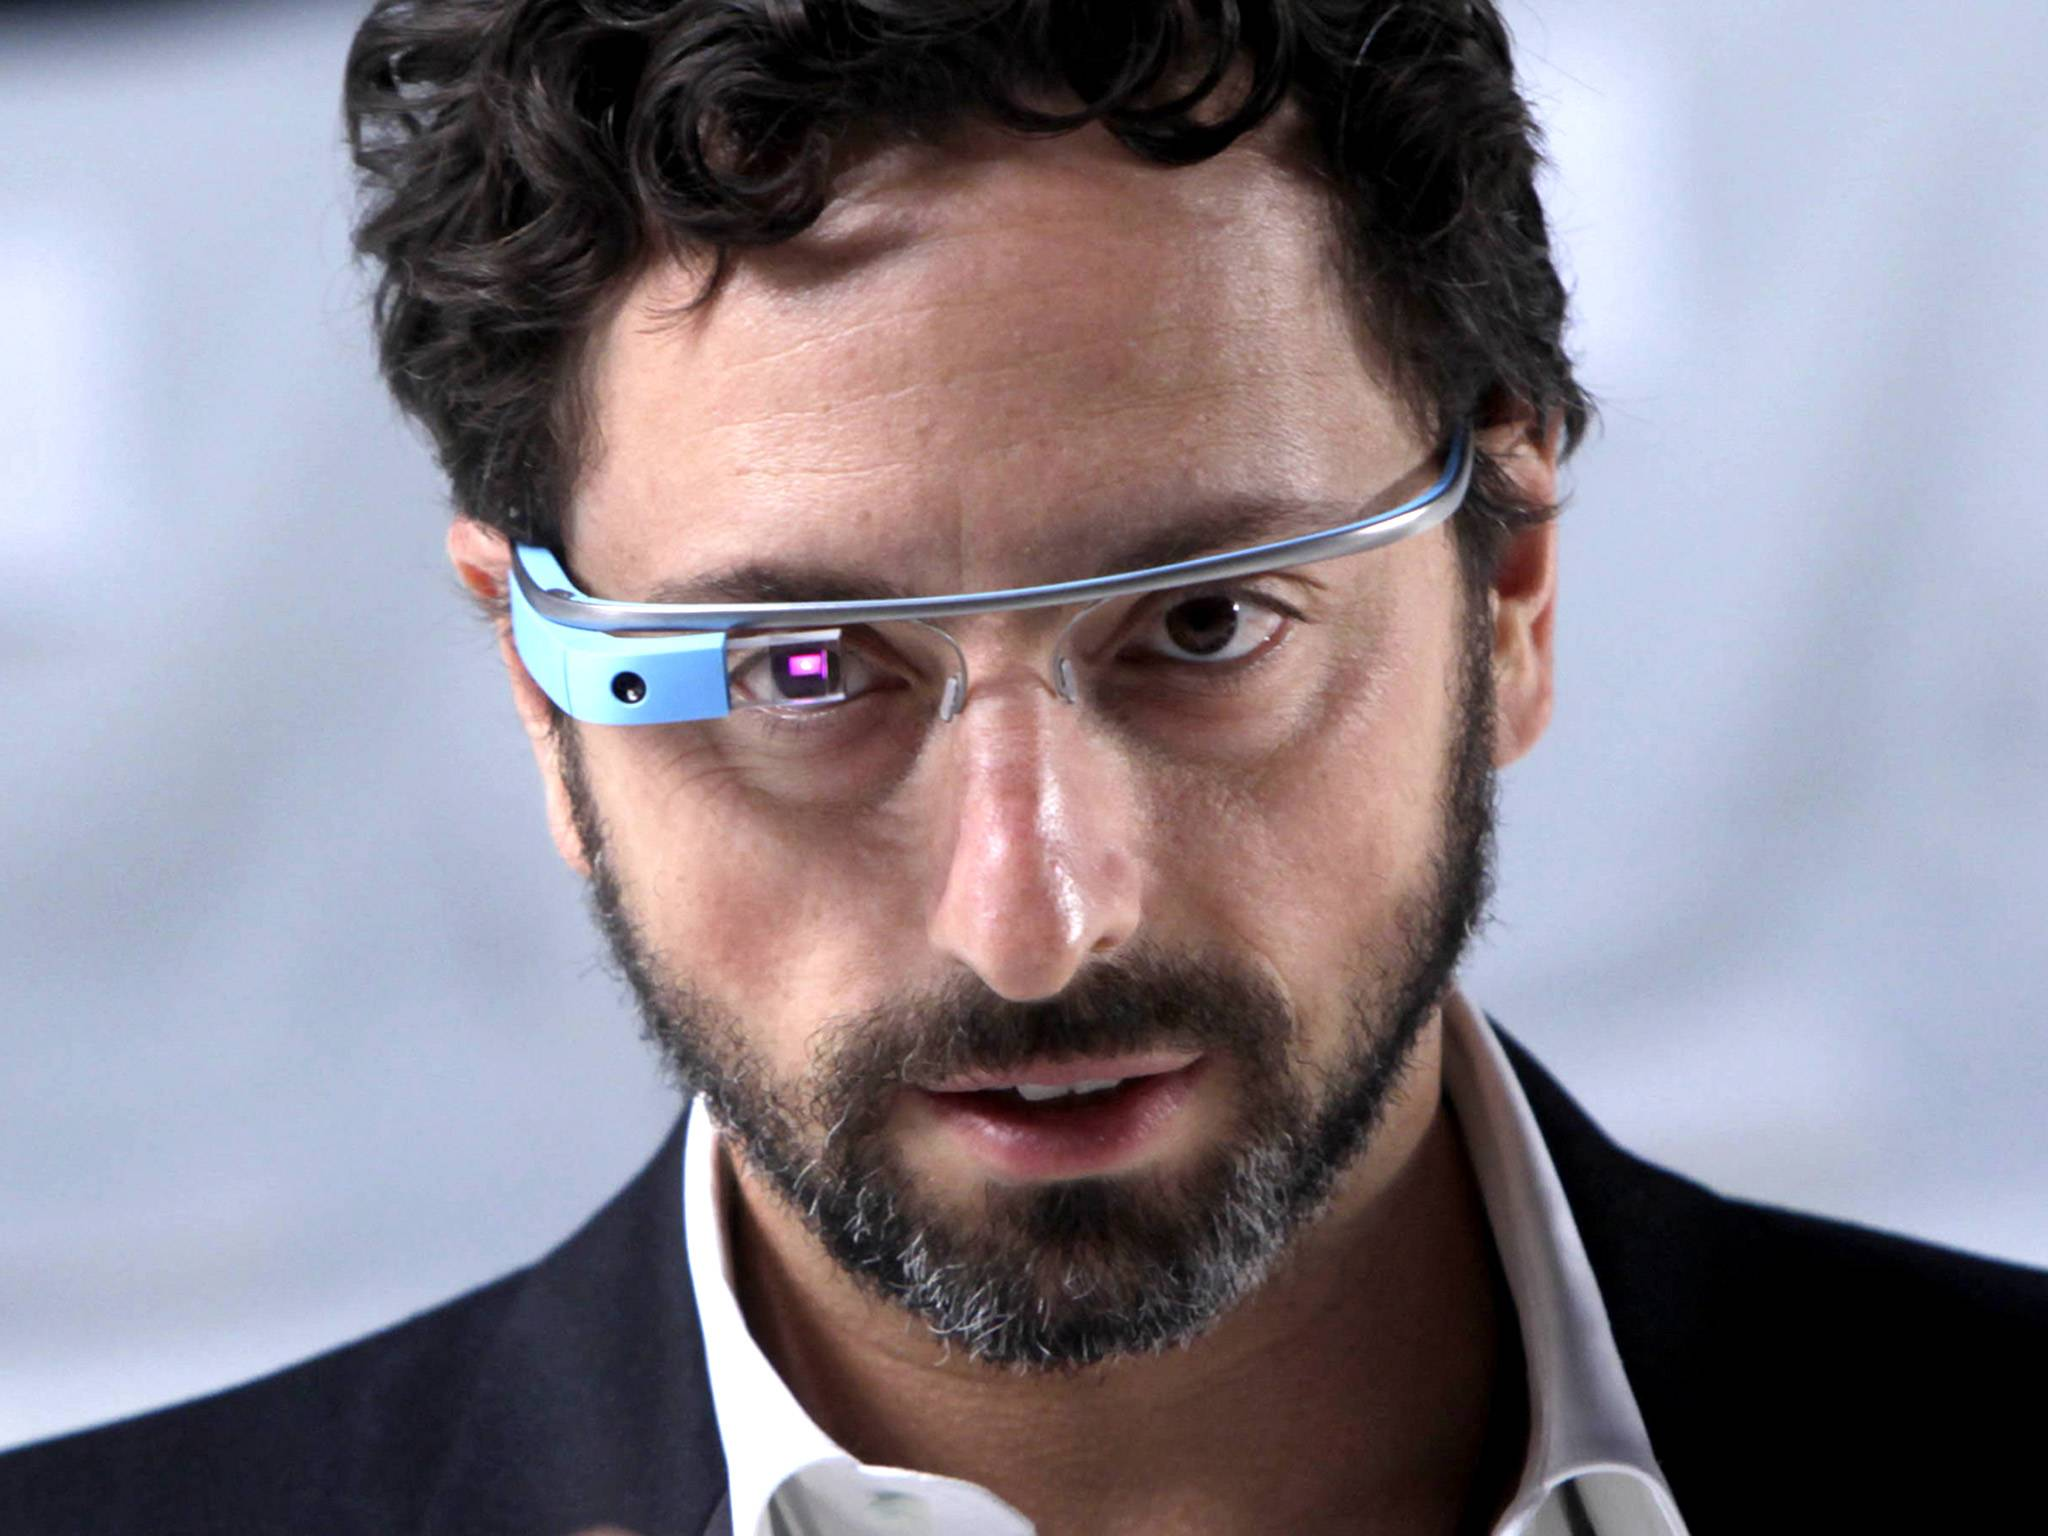 Best 49 Sergey Brin Wallpaper on HipWallpaper Sergey Brin 2048x1536